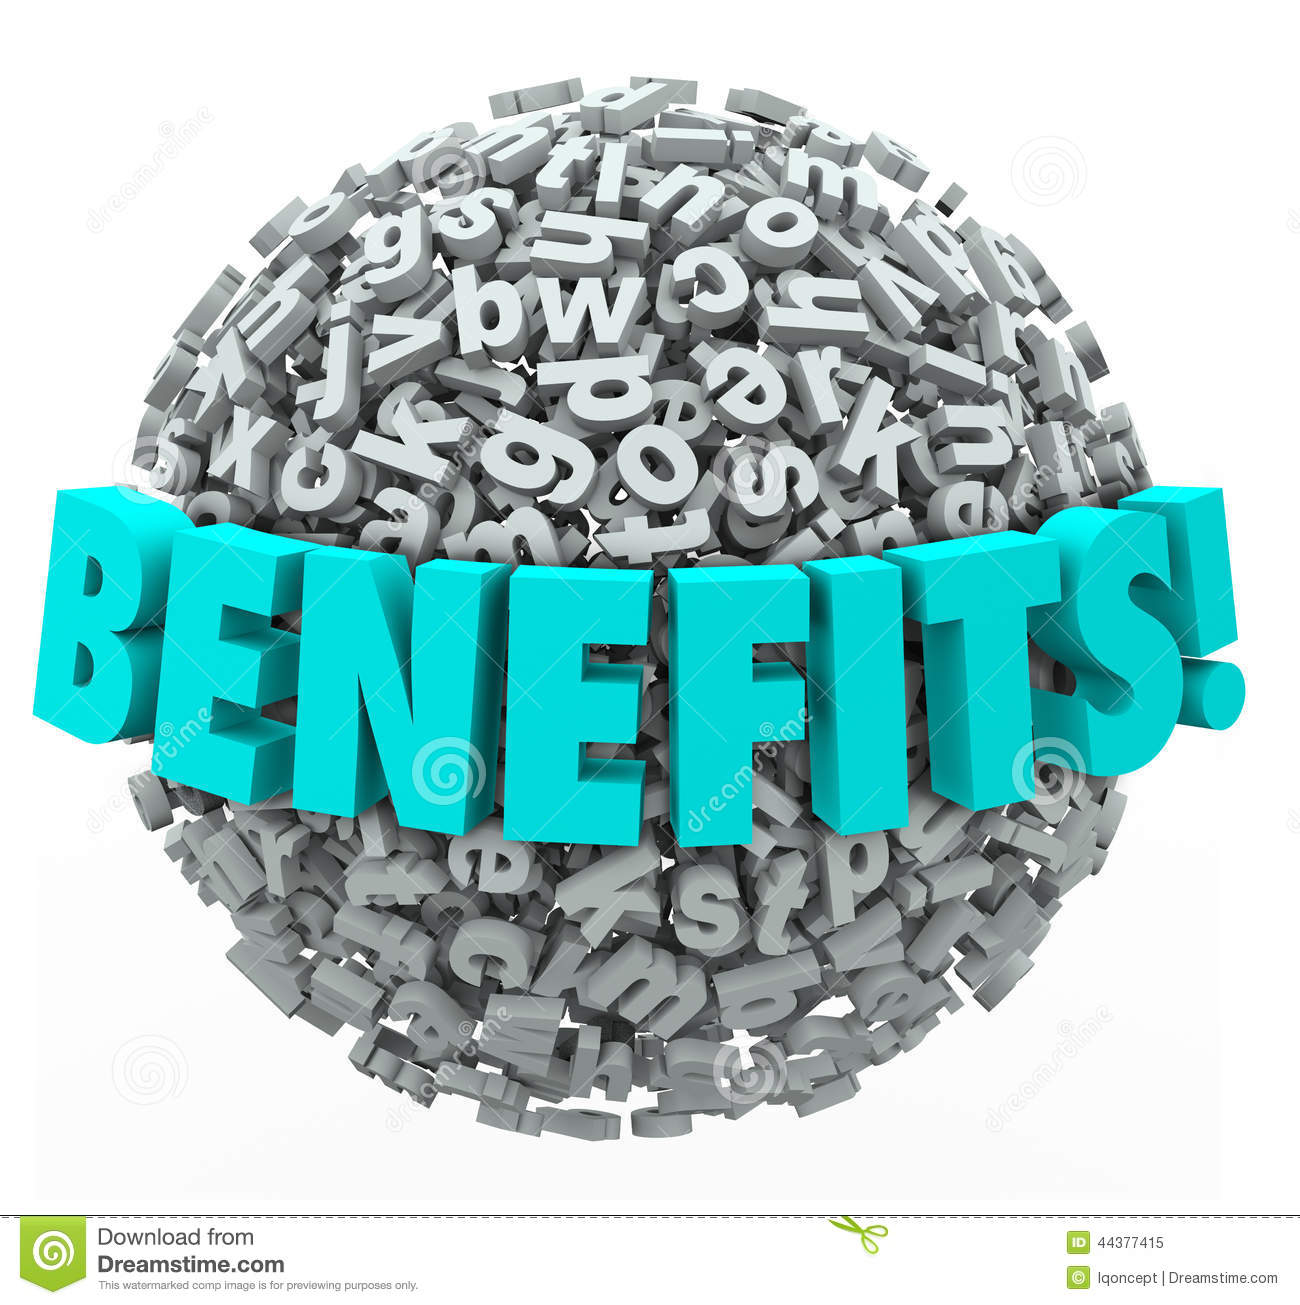 Benefits clipart free picture freeuse stock Benefits Clip Art Free | Clipart Panda - Free Clipart Images picture freeuse stock